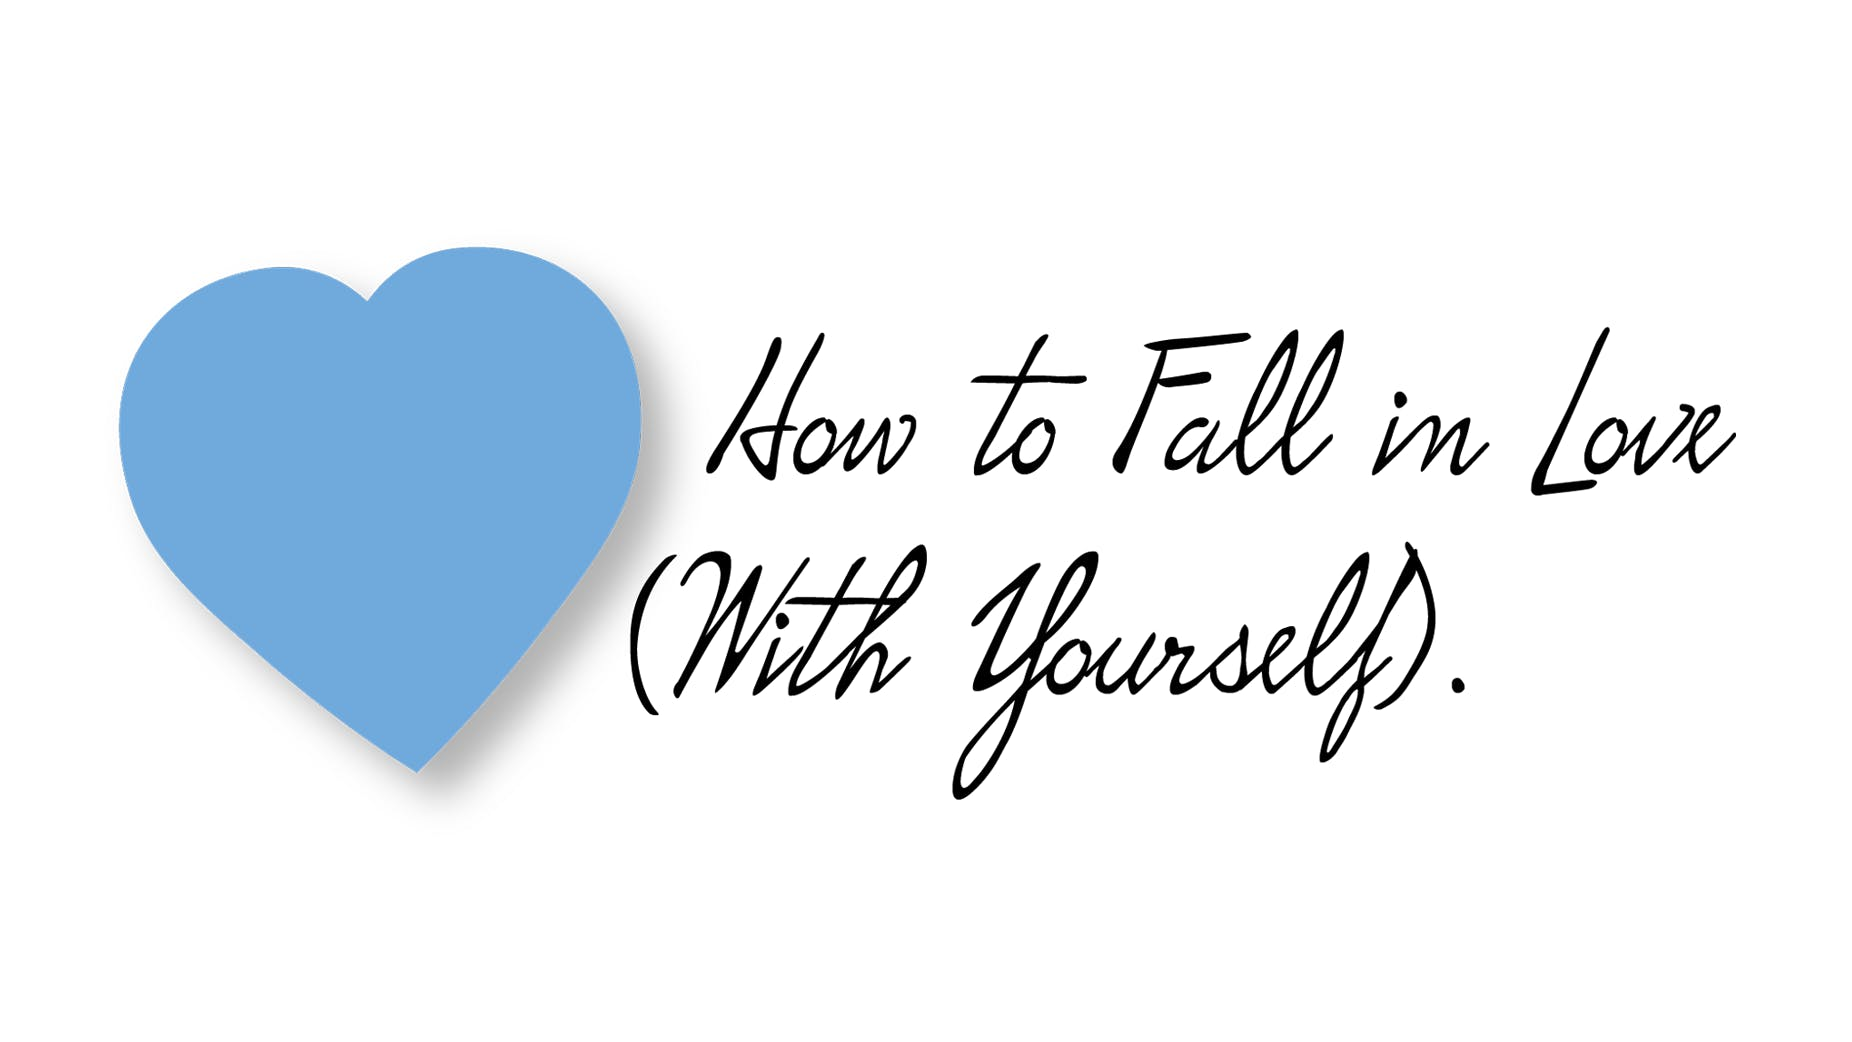 How to Fall in Love (With Yourself)